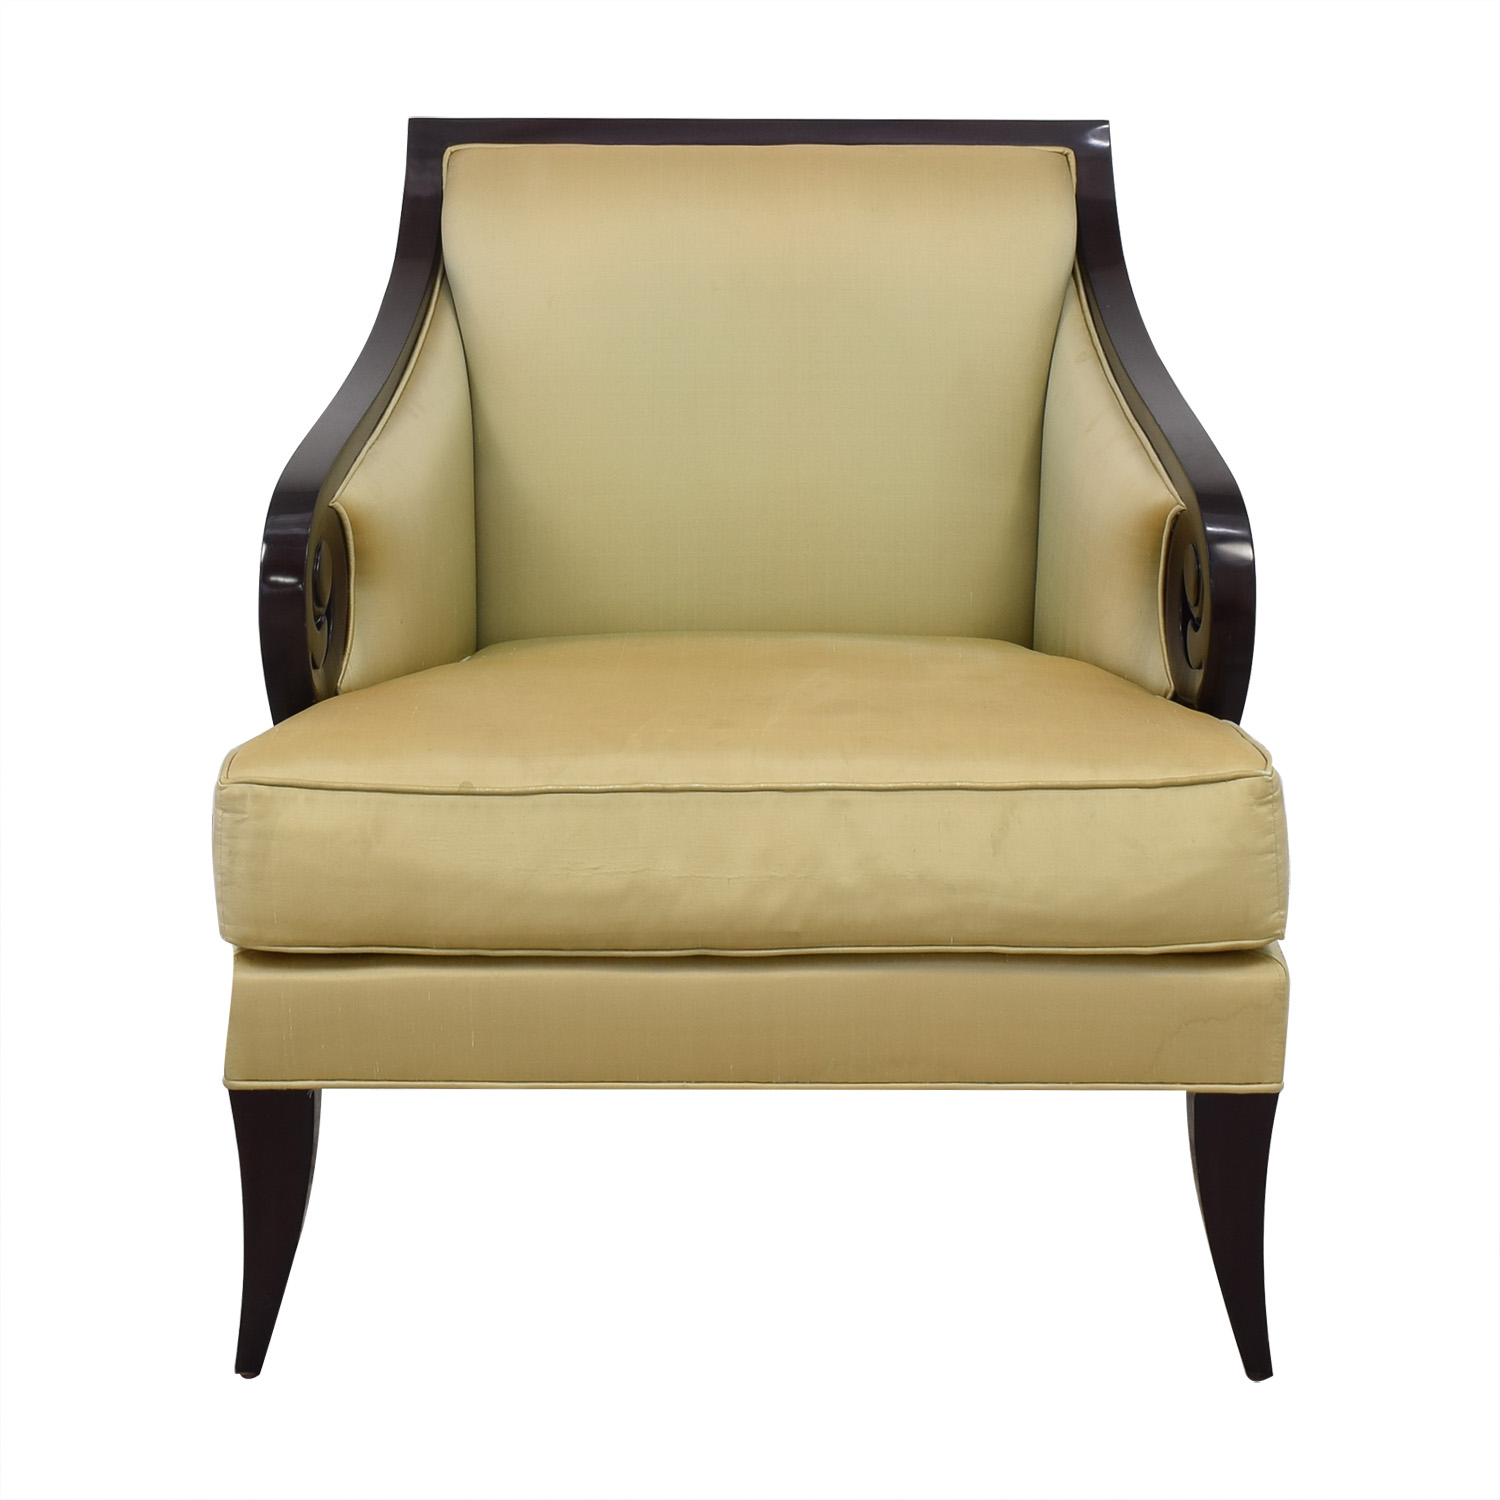 Christopher Guy Christopher Guy Ornate Arm Chair discount